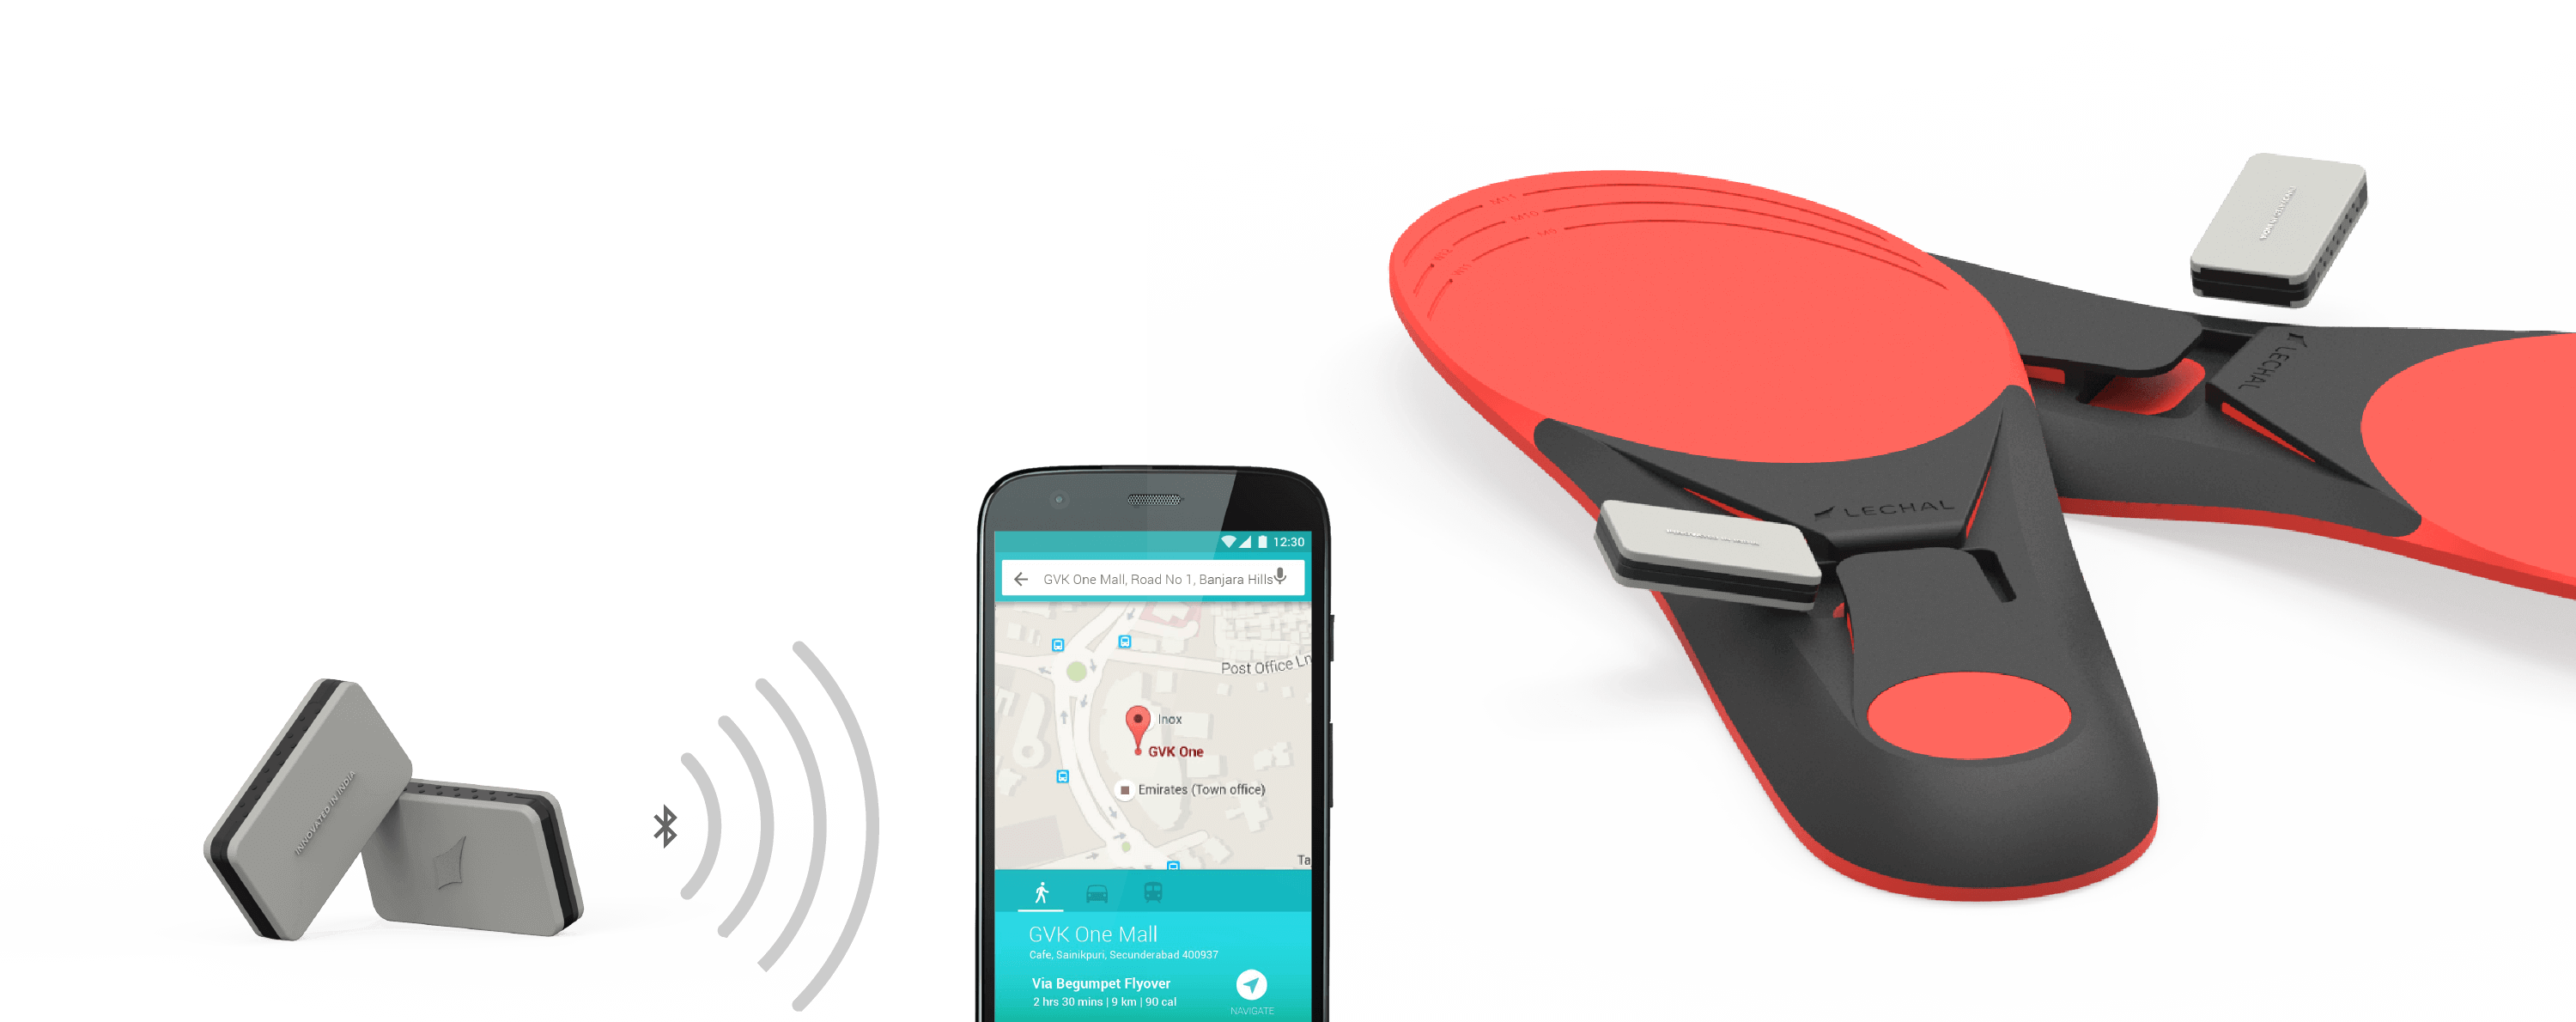 The Lechal pods connecting to the Lechal app via Bluetooth Smart.Lechal Mach Unisex Insoles with the Lechal pods being inserted into them